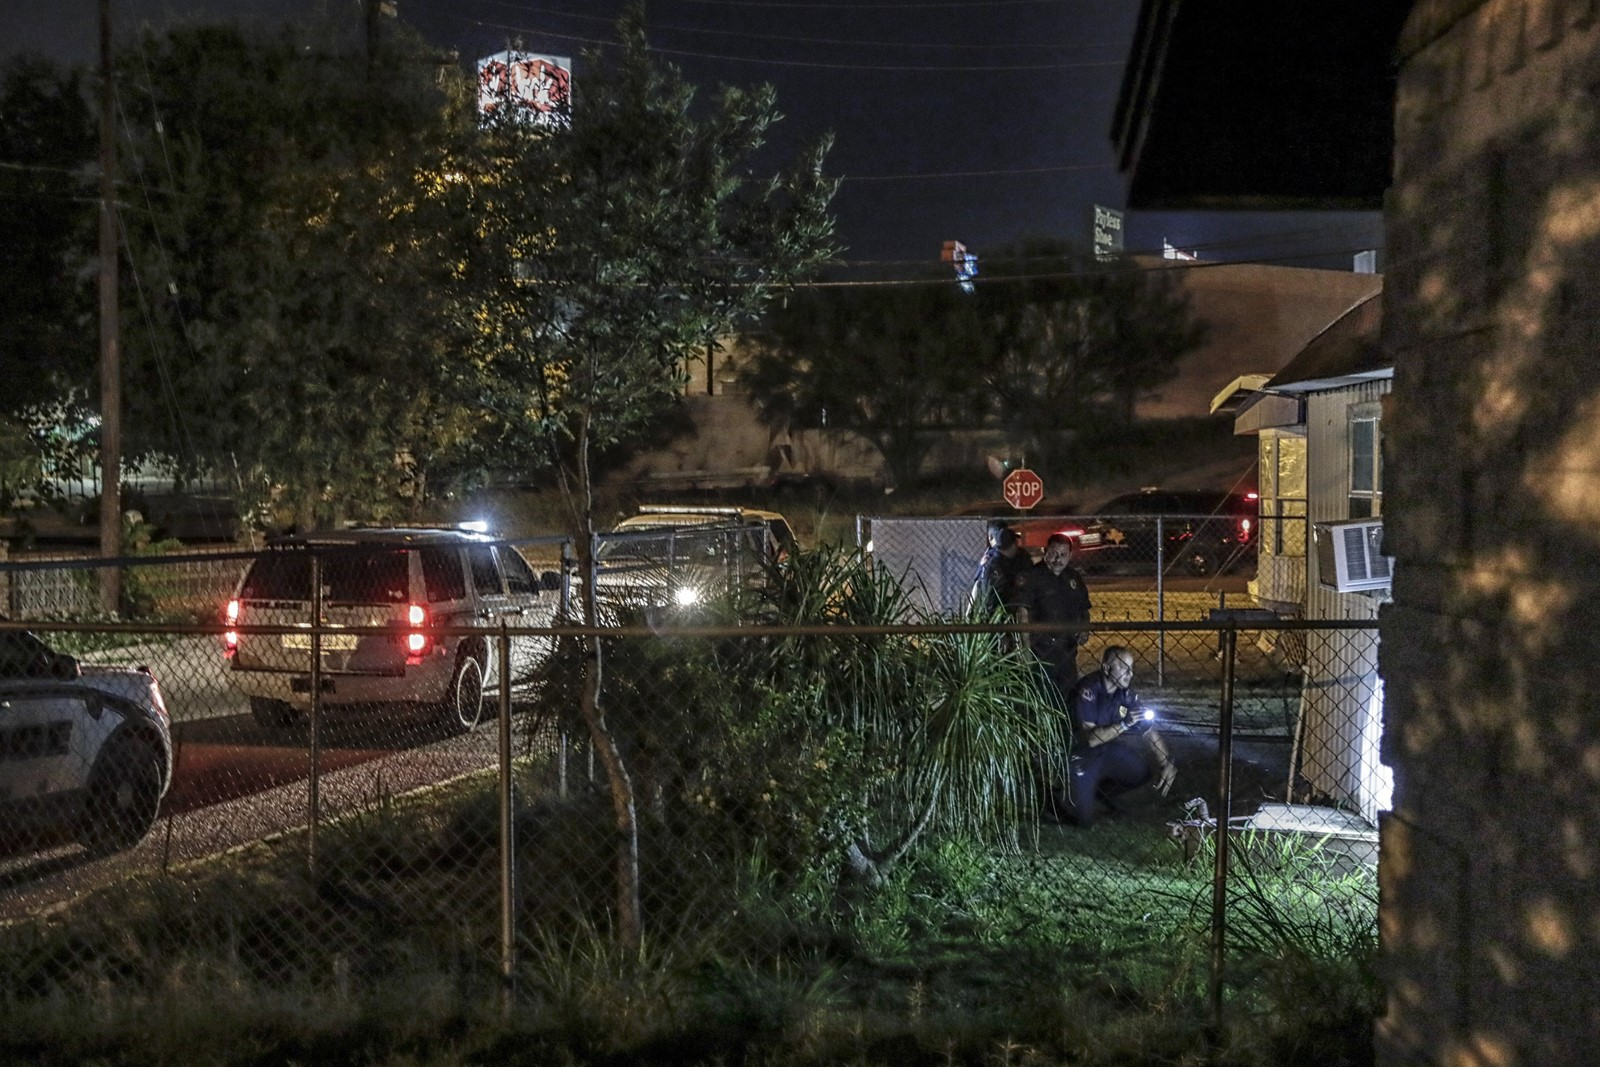 Police in Roma help Border Patrol agents search for a migrant underneath a mobile home. In the town of 11,400 residents, immigrants appear just about anywhere — hiding in carports, trees, church pews, storm drains and department store clothes racks. — Photograph: Robert Gauthier/Los Angeles Times.